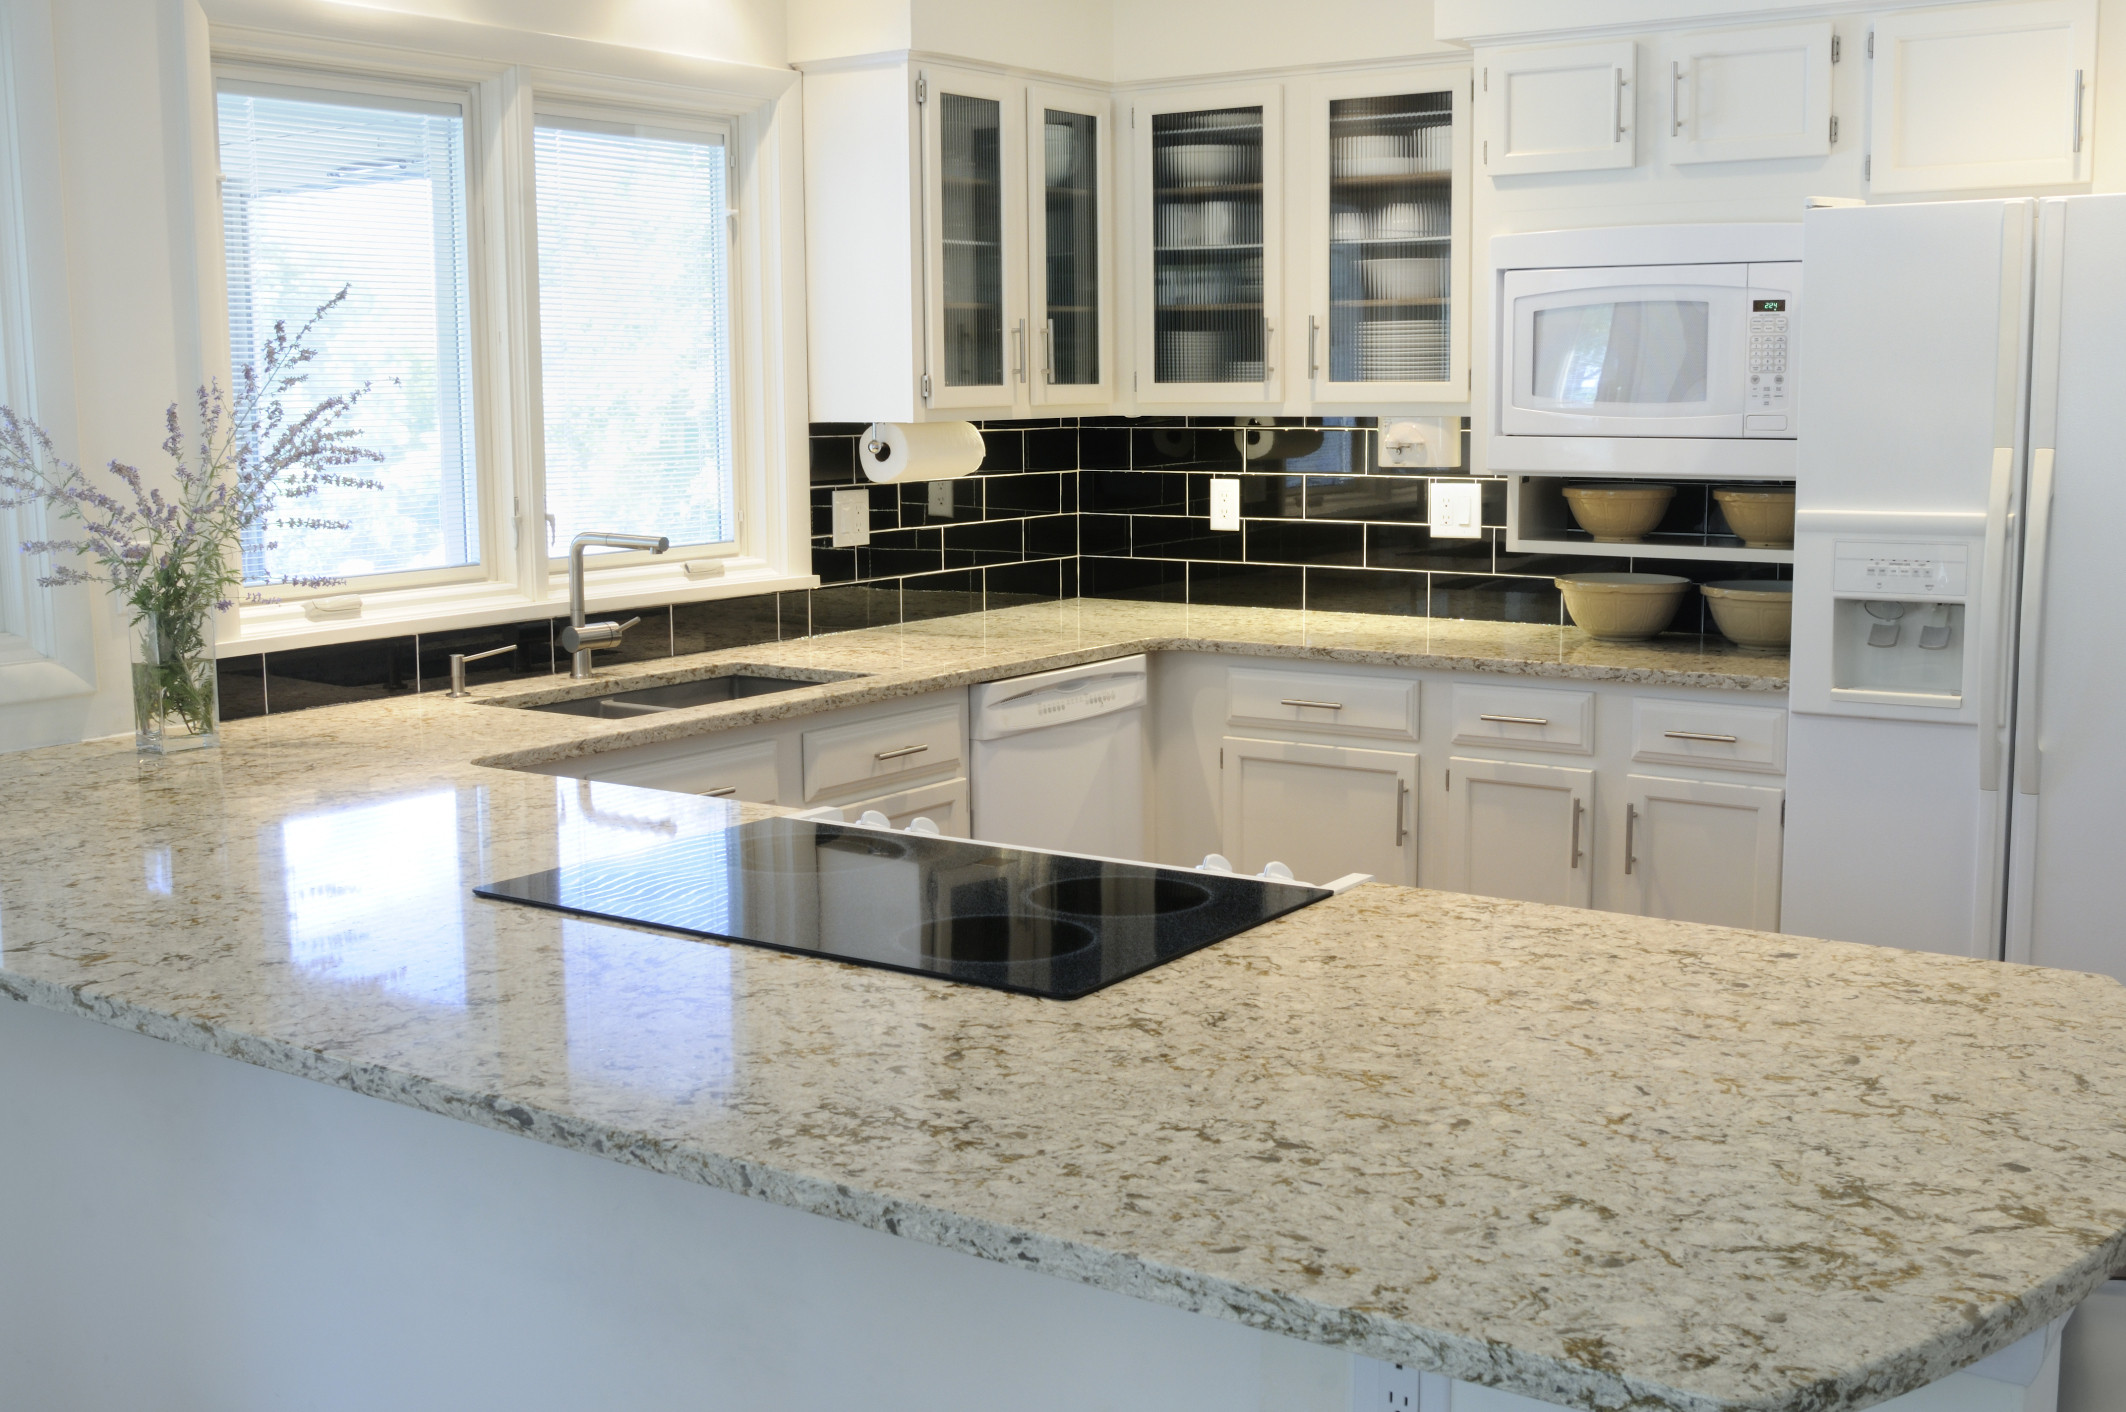 Granite countertops most popular favorite - Quartz Countertop